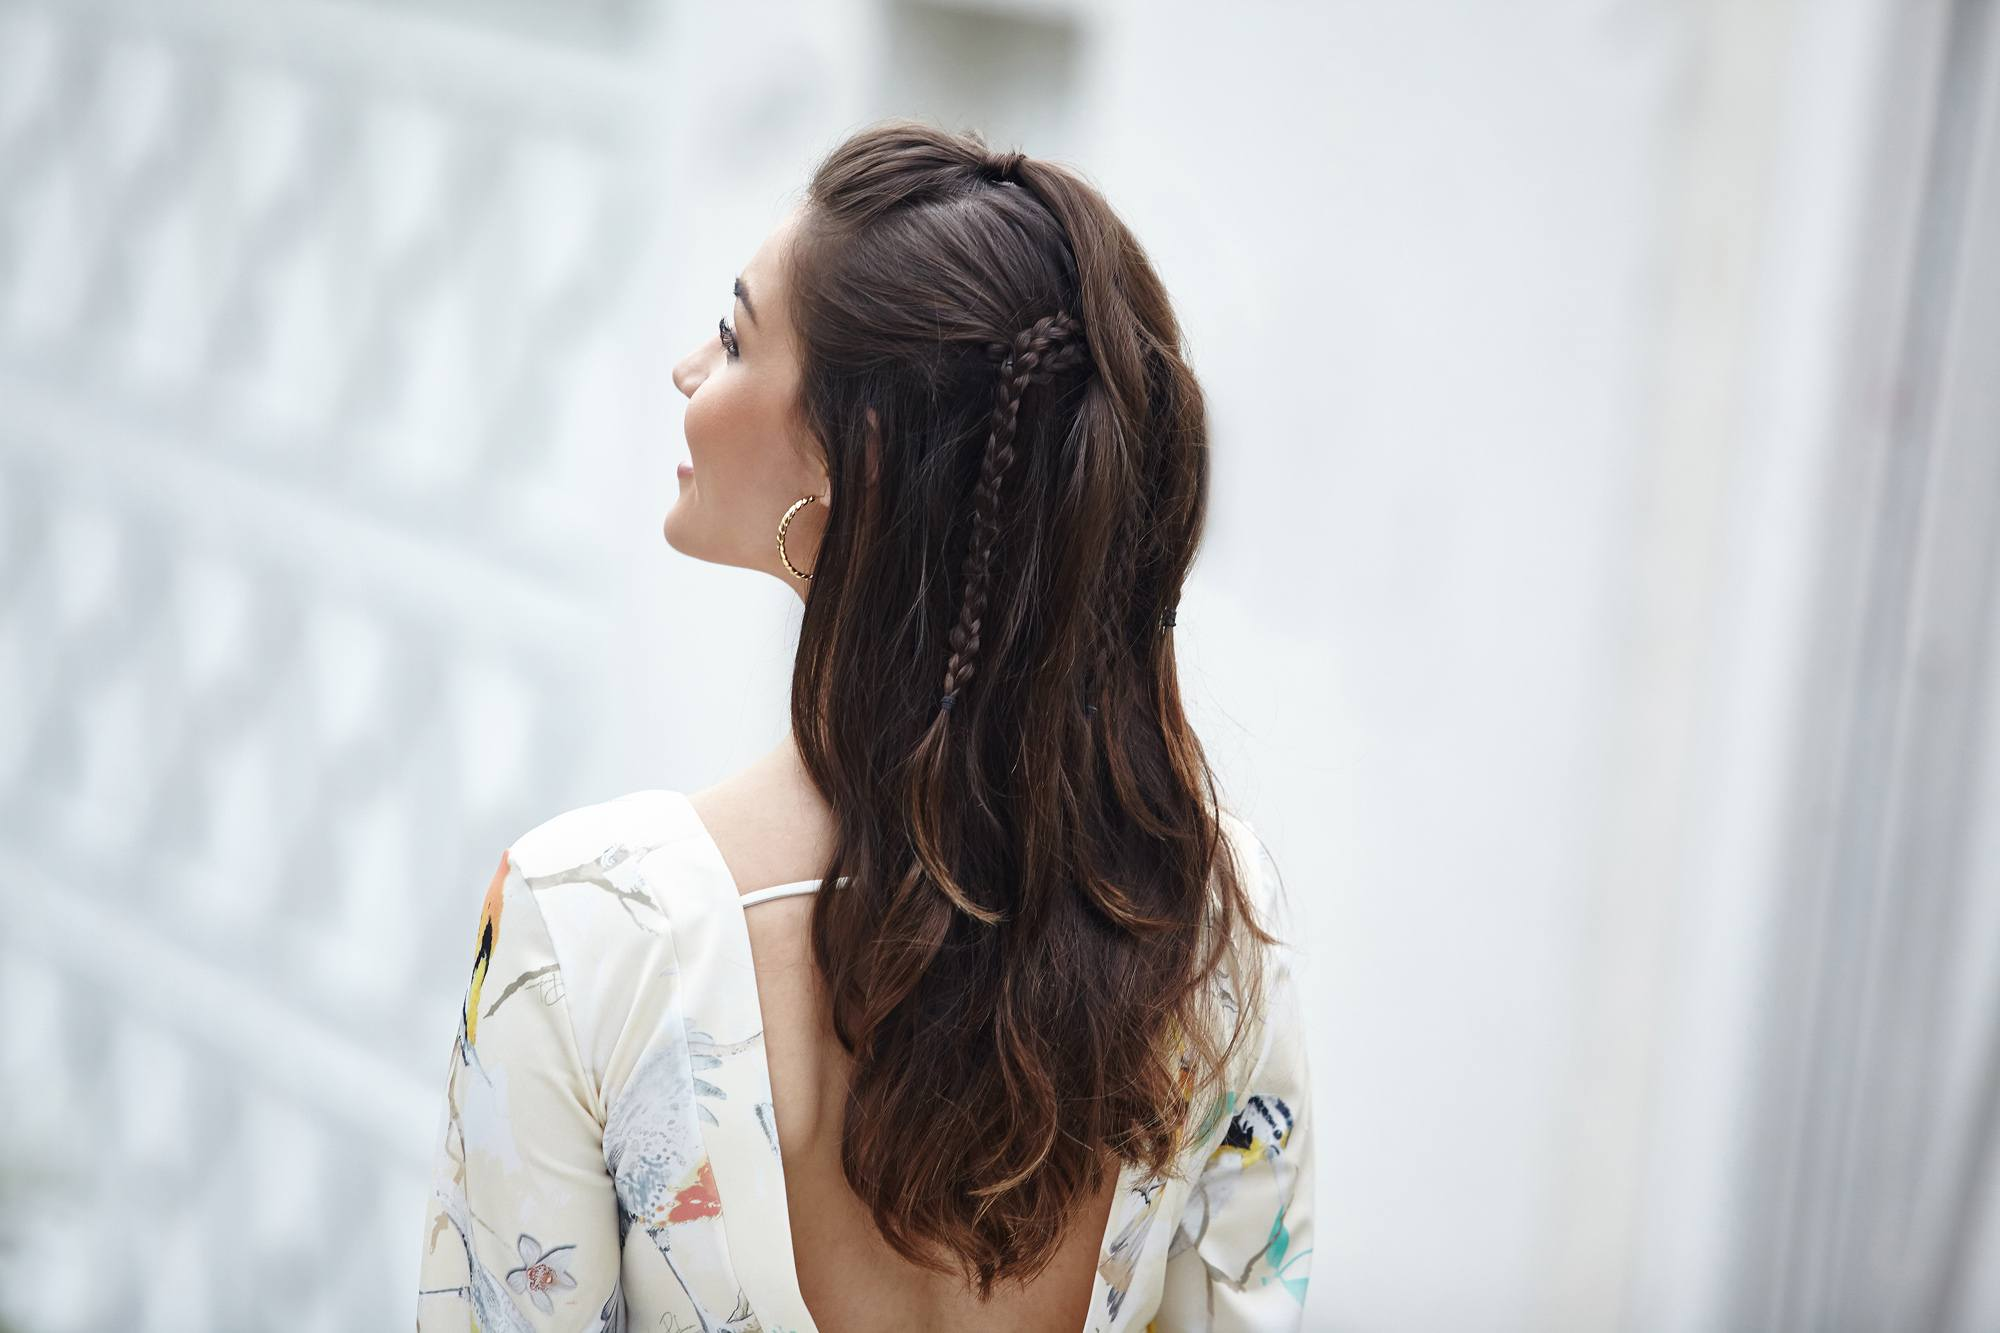 Engagement Party Hair Ideas: 8 Awesome Hairstyles To Try